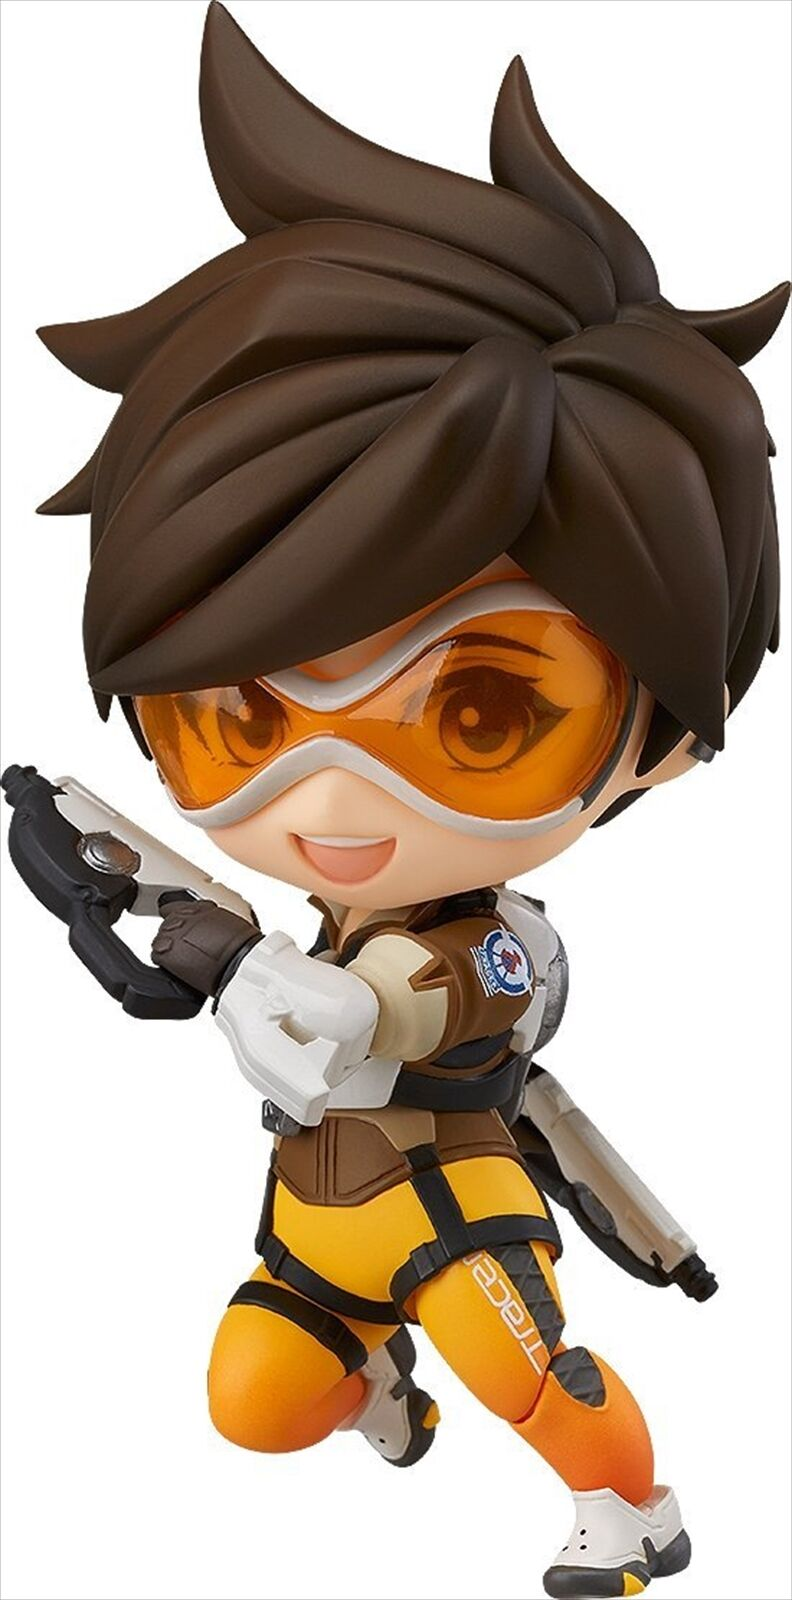 Good Smile Company Overwatch Tracer Classic Skin Edition Nendgoldid Action Figure